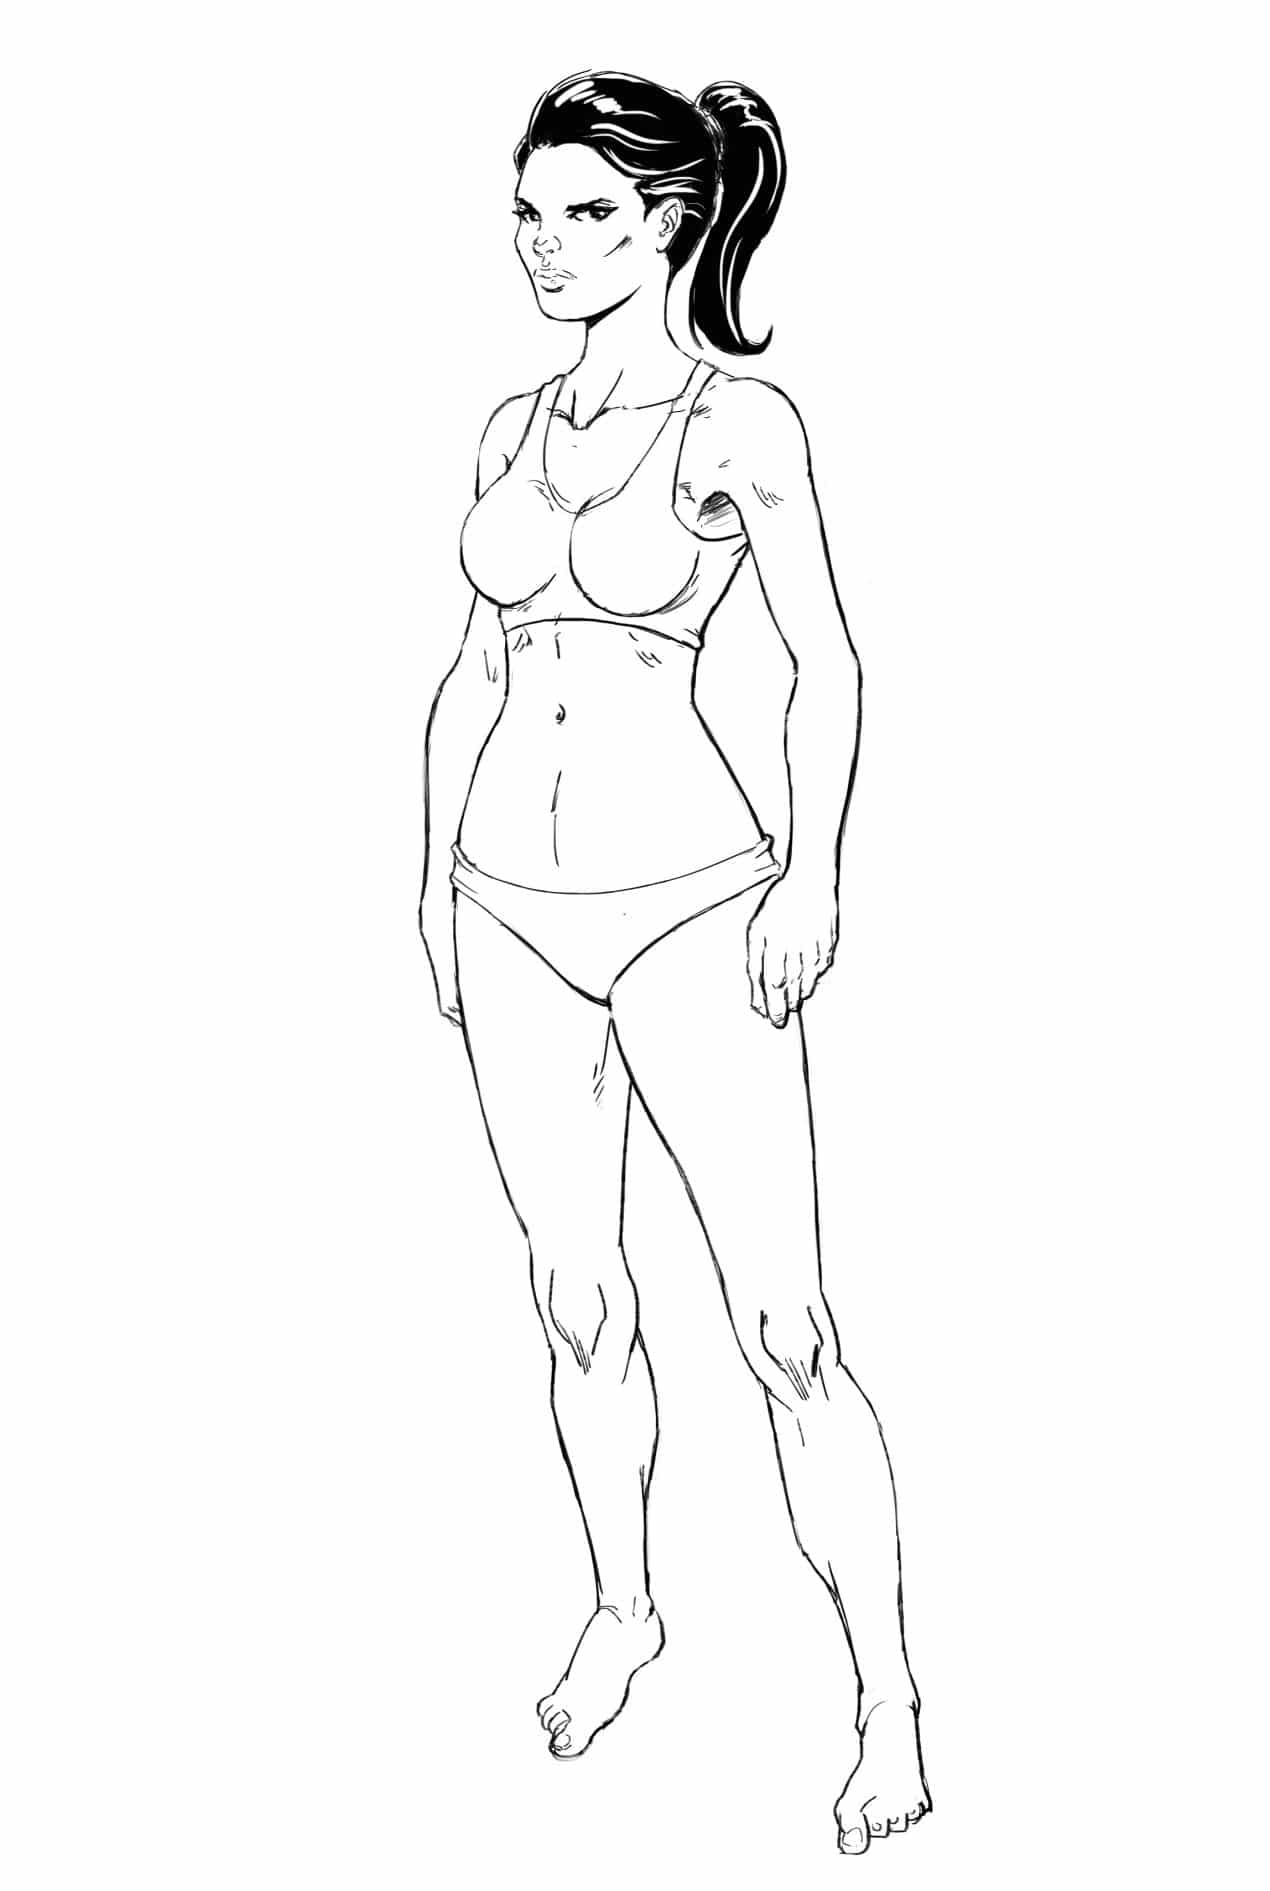 How to Draw the Female Body. Learn to Draw a Girl